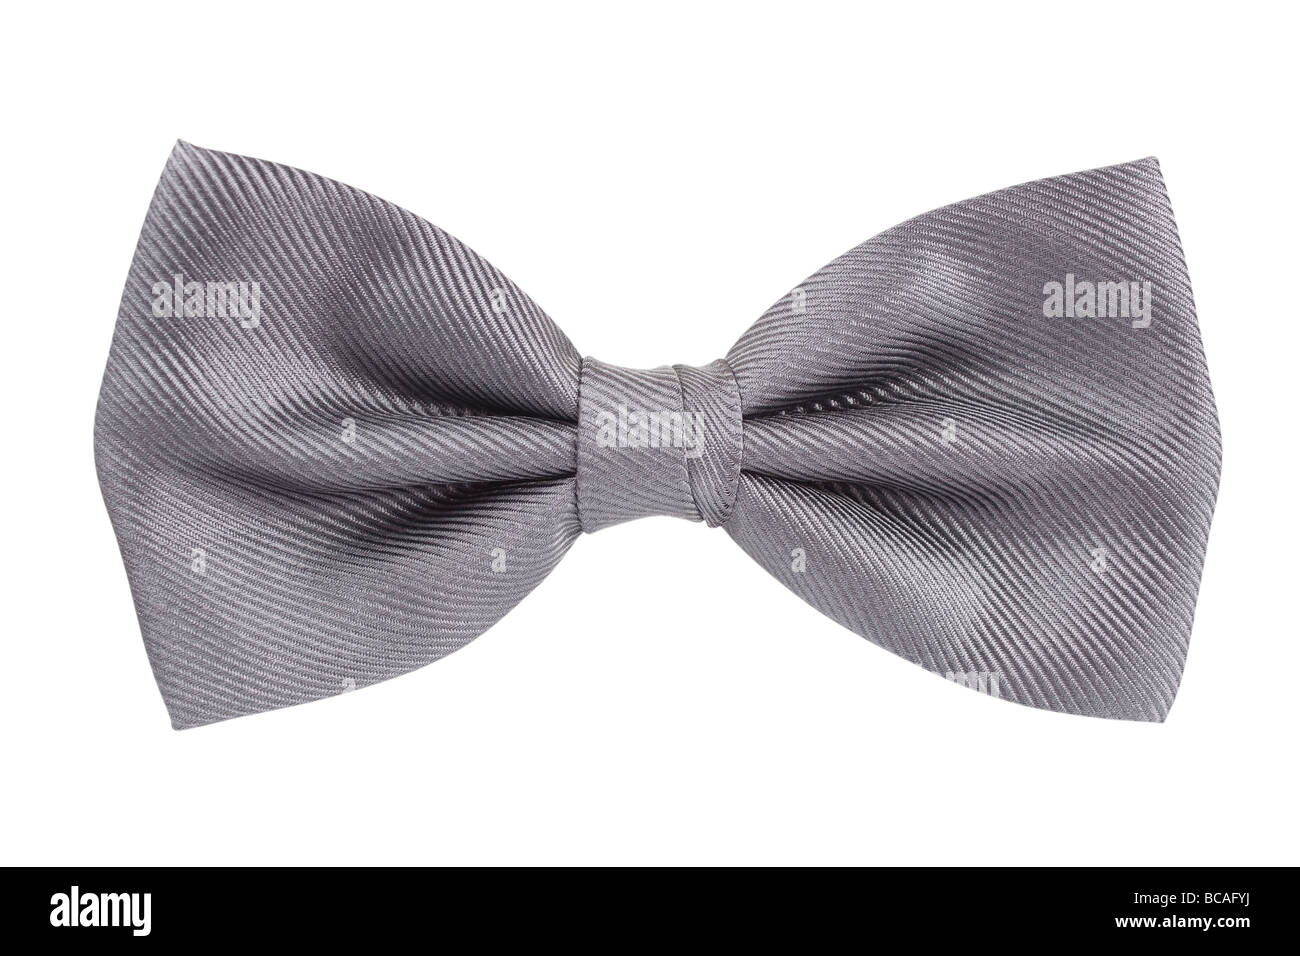 Silver bow tie isolated over white background. - Stock Image